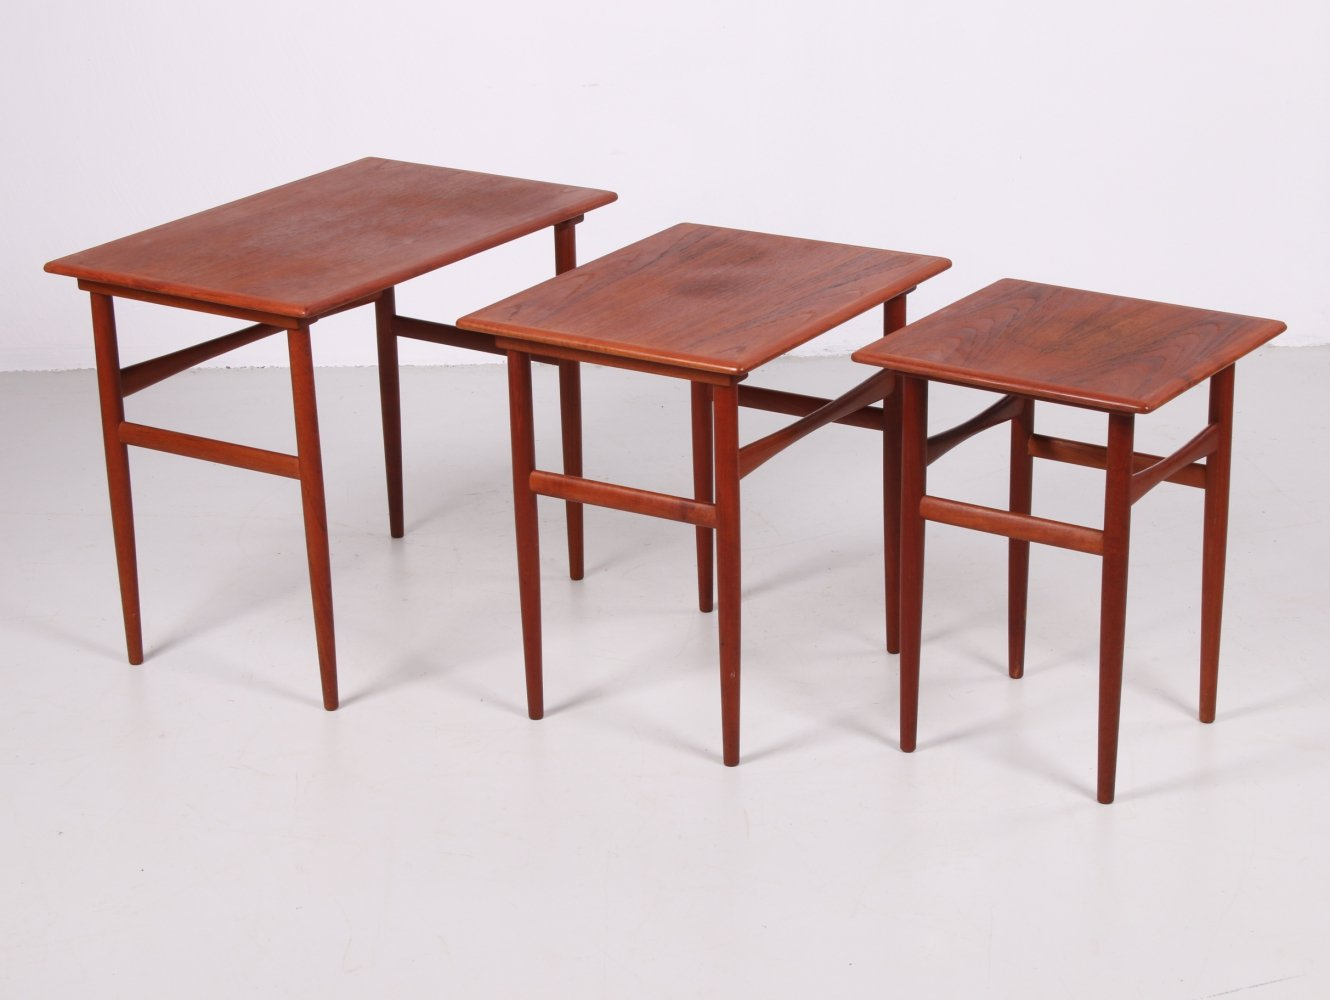 Danish set of teak side tables by Dyrlund, 1960s